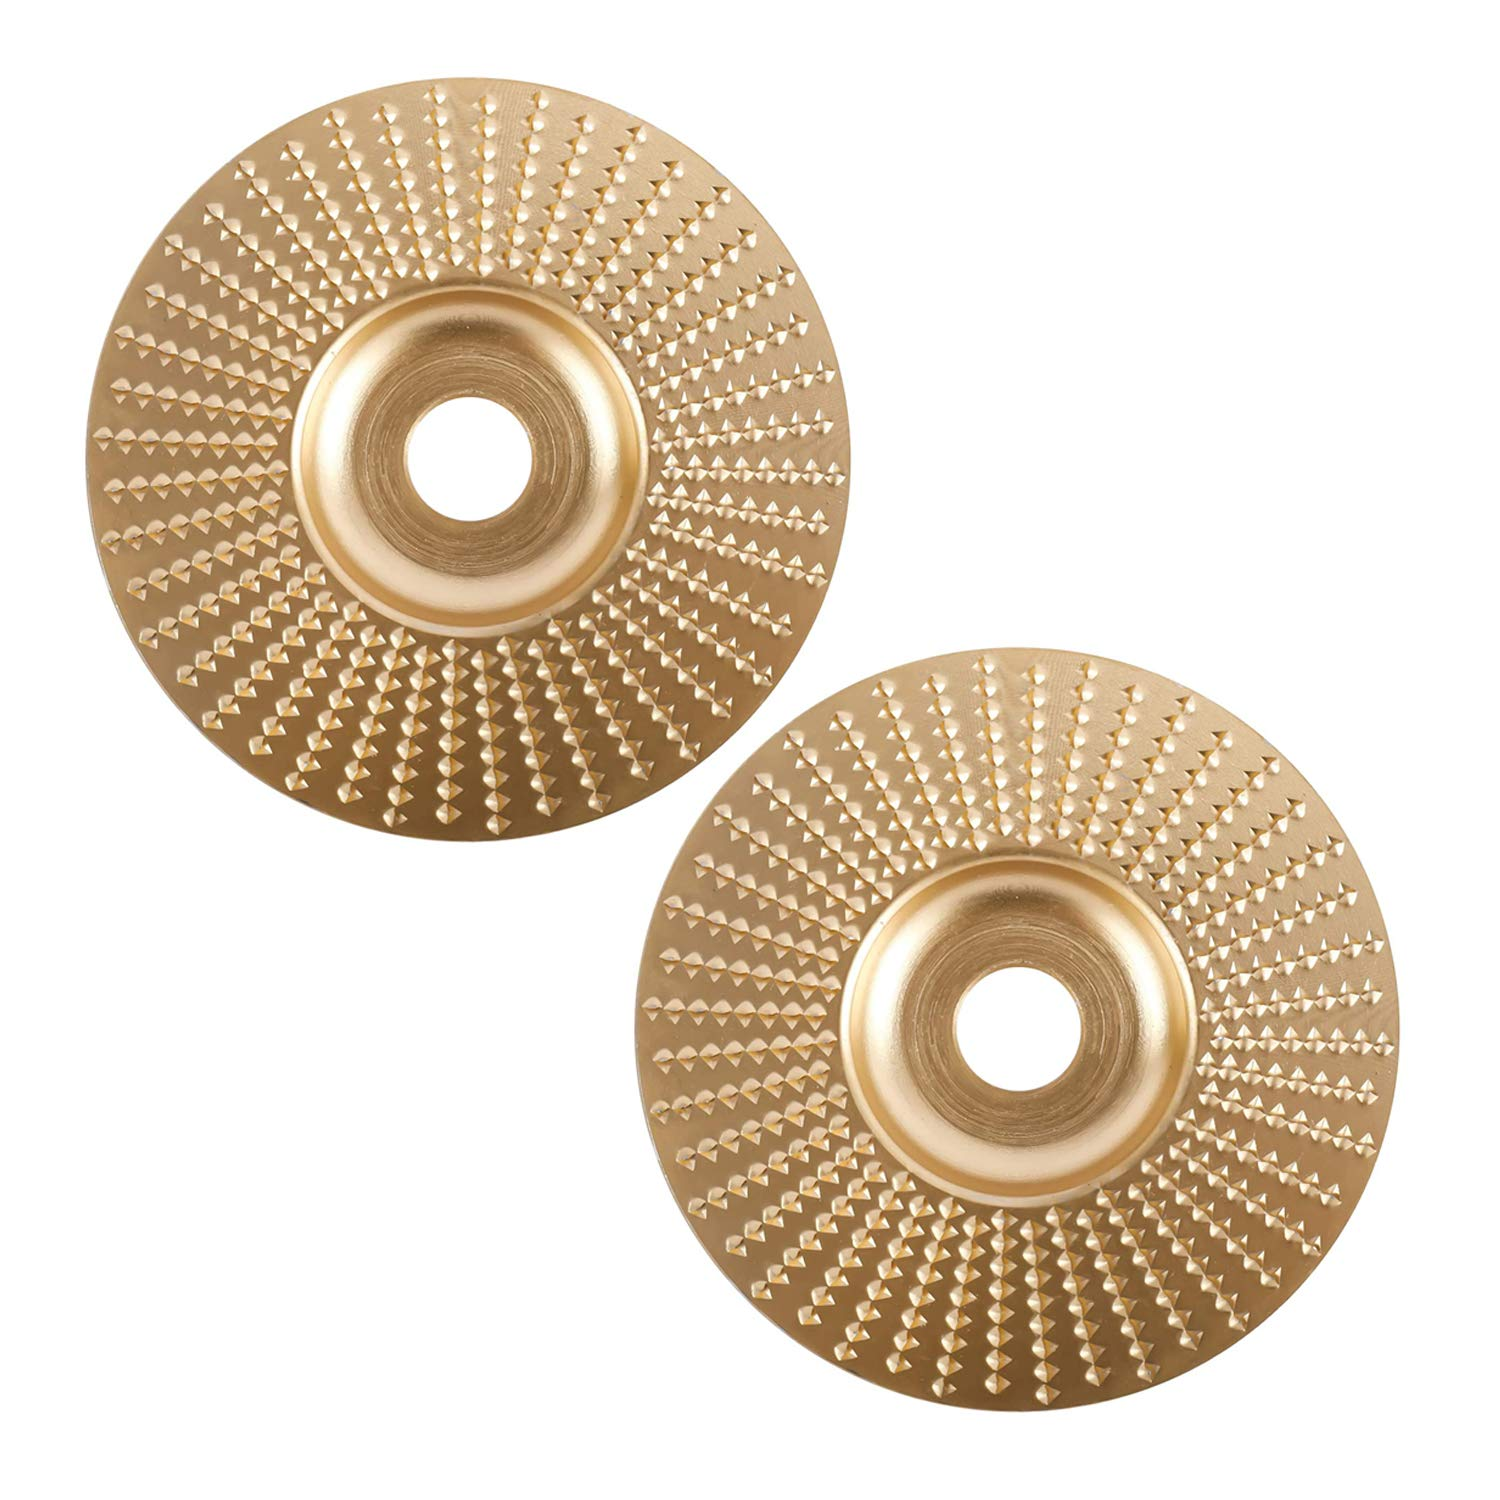 YaeGarden 2-Pack 4 Reservation Inch Disc Shaping Grinder Angle Ranking TOP13